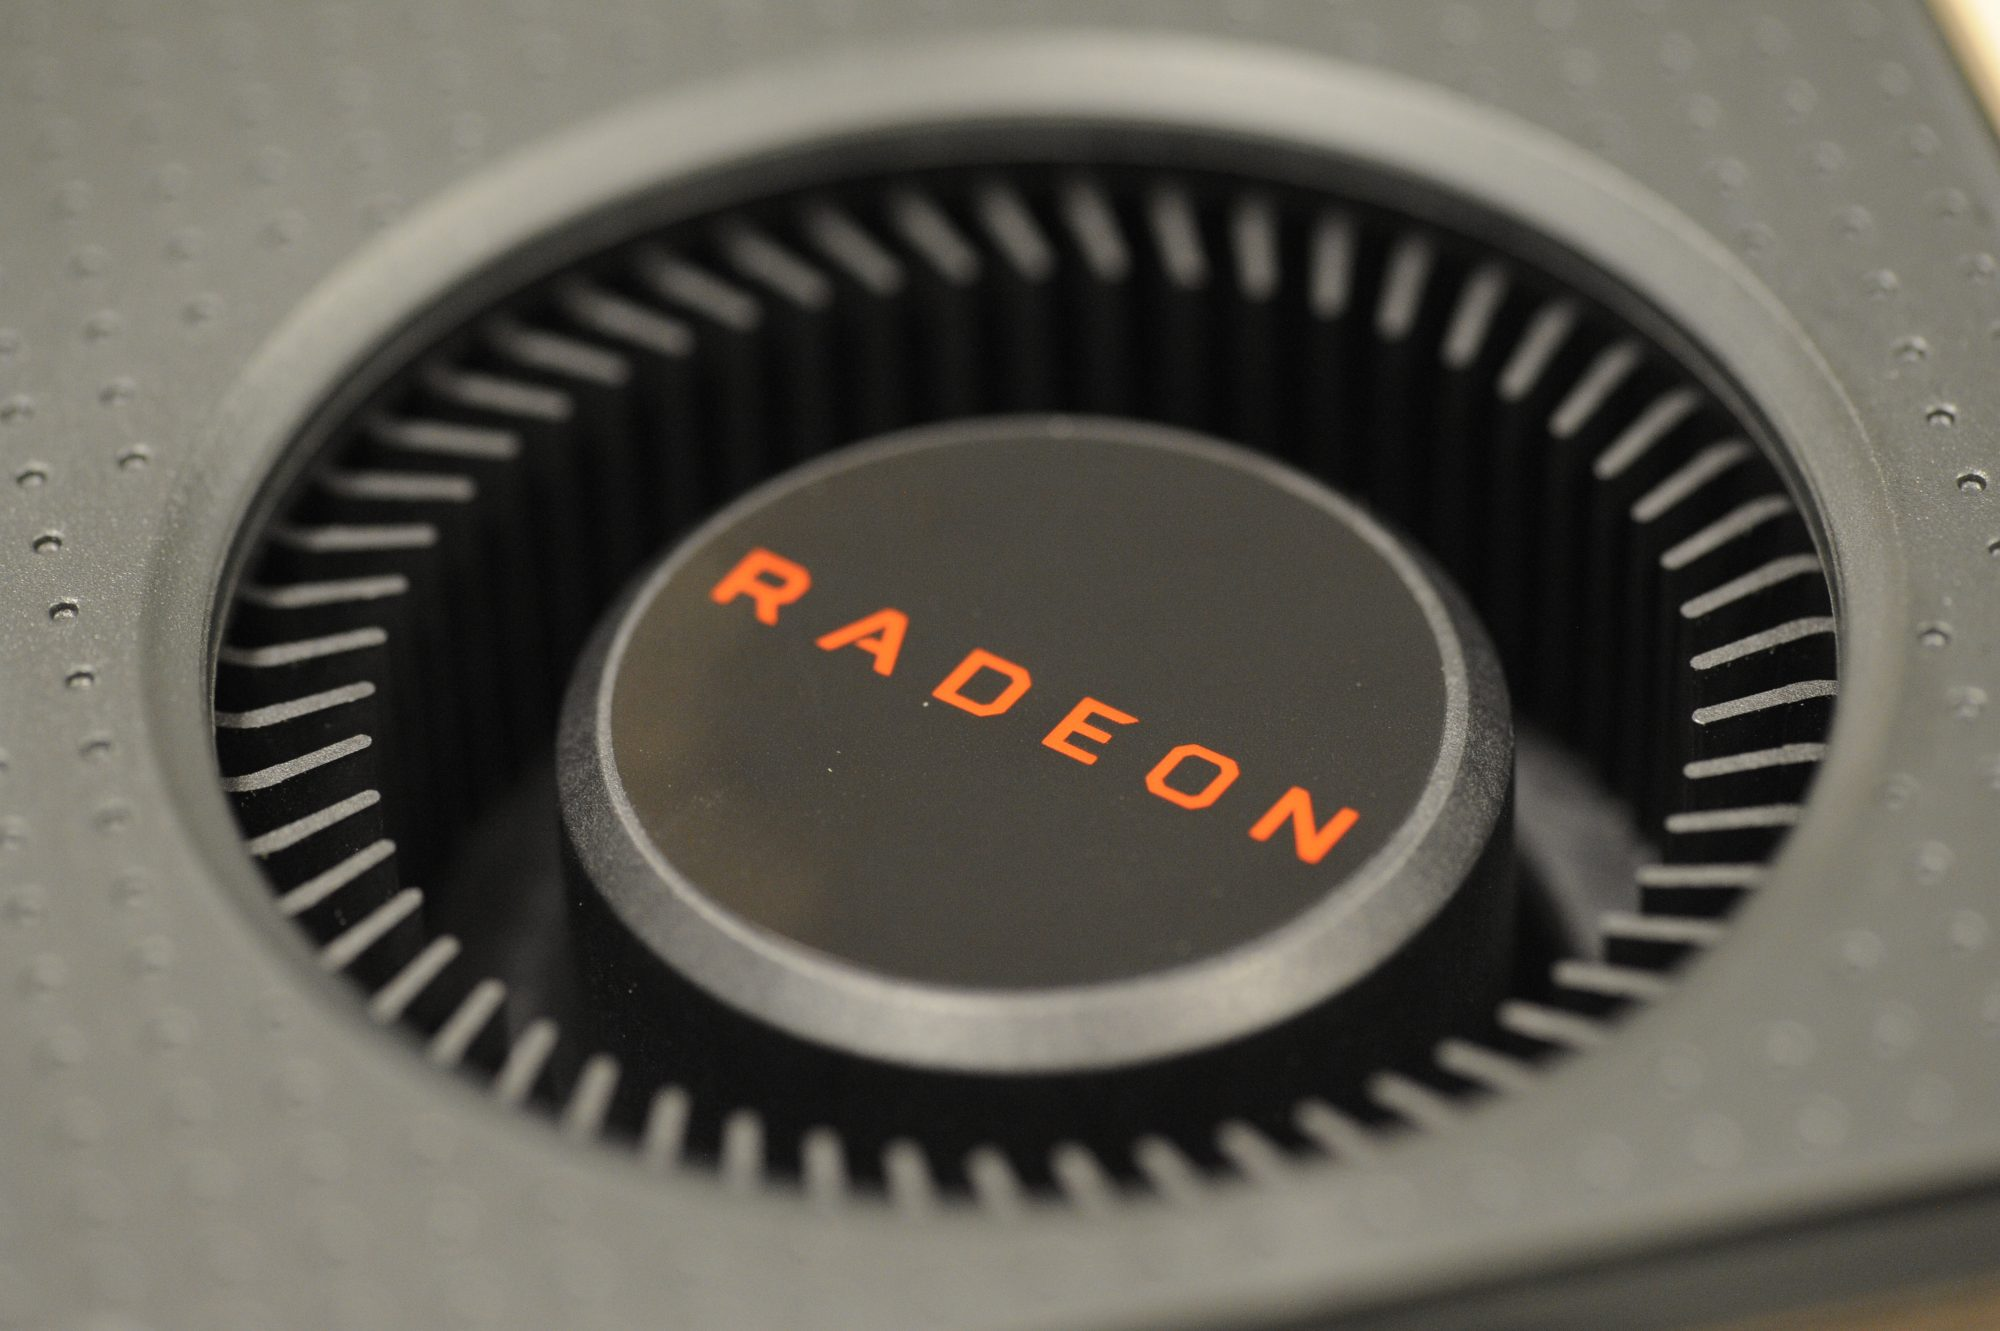 AMD Radeon RX 580, Radeon RX 570 and Radeon RX 550 Performance